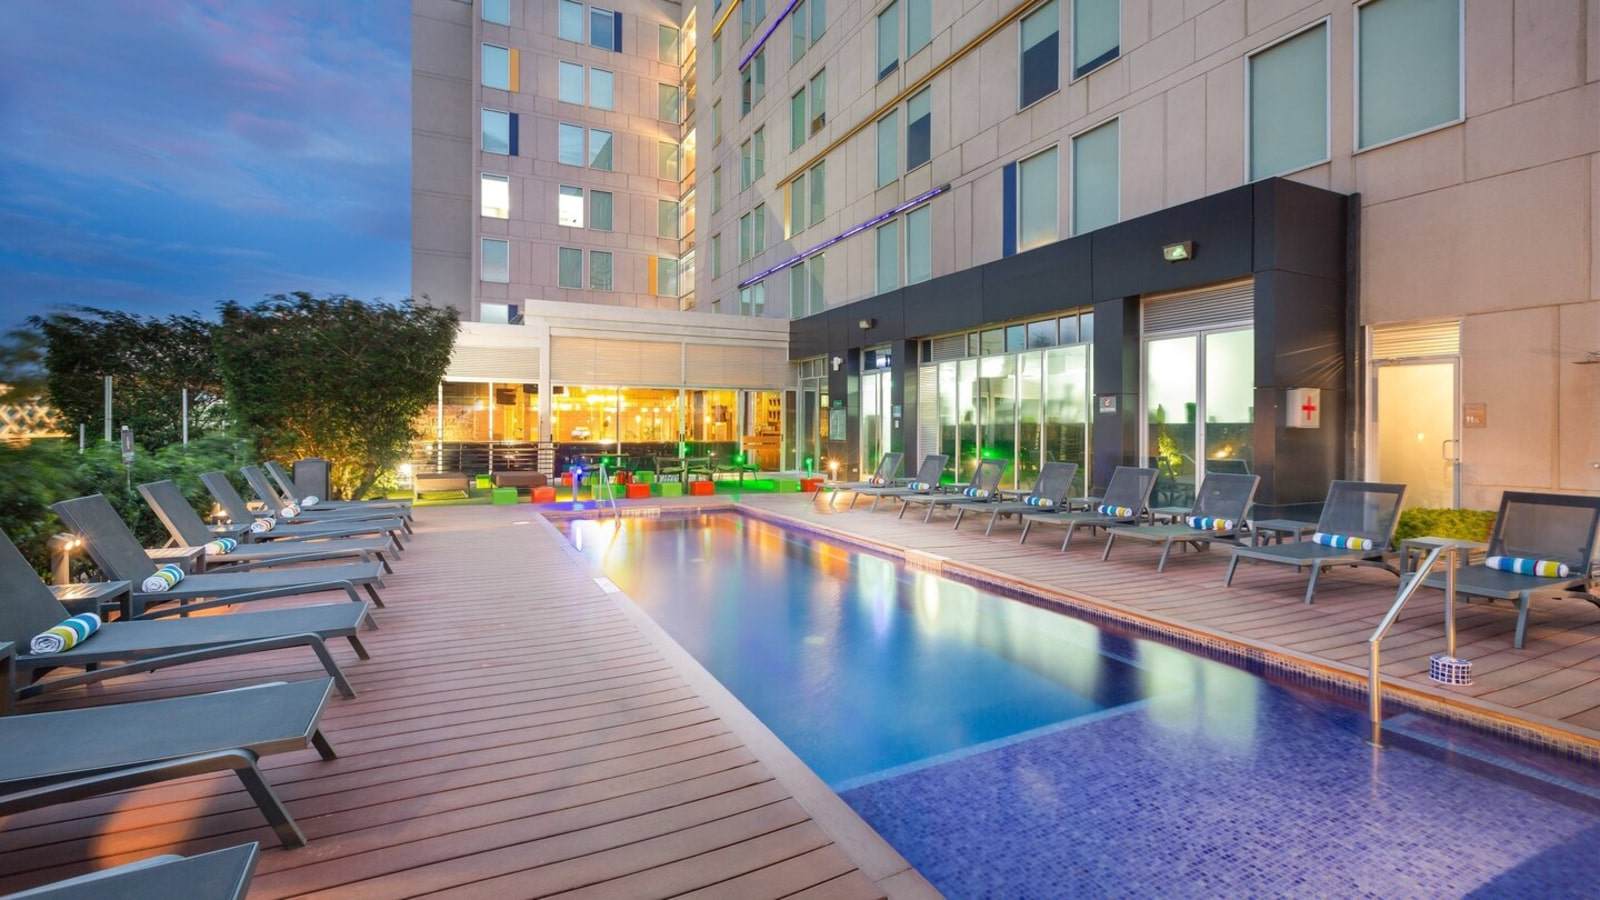 Aloft San Jose Hotel Costa Rica Gaytravel Approved Hotel